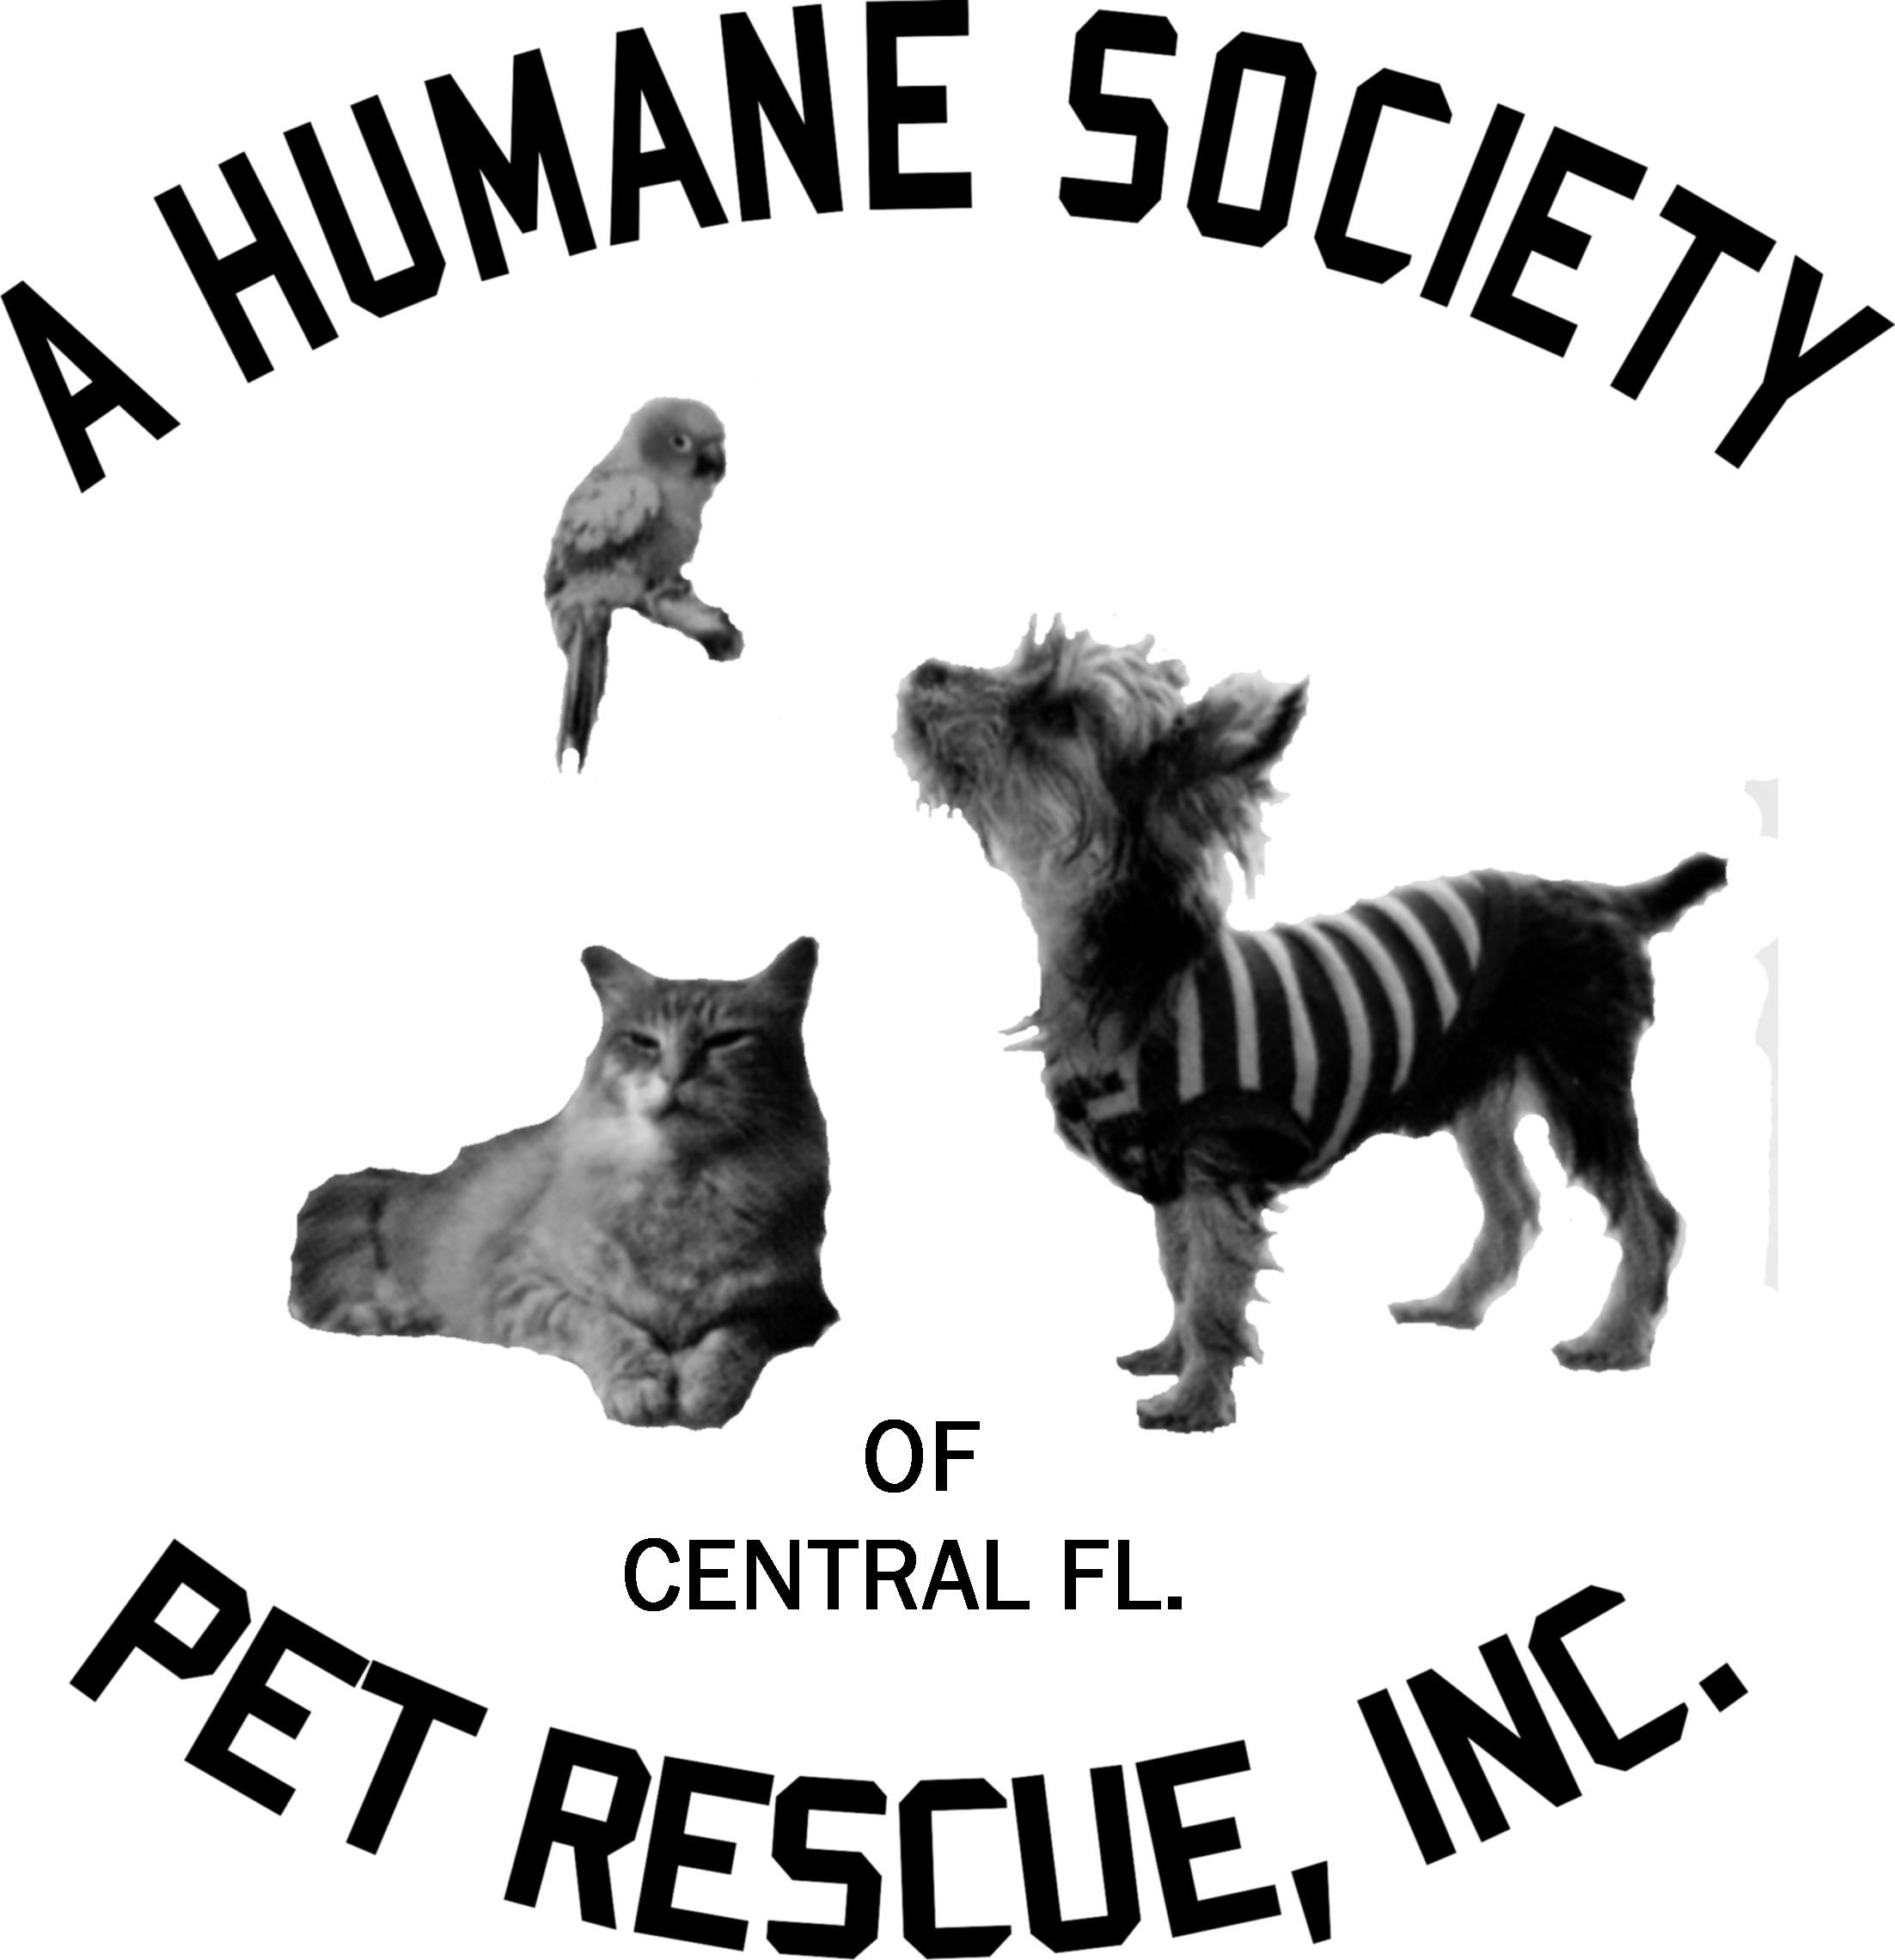 A Humane Society of Central Florida Pet Rescue